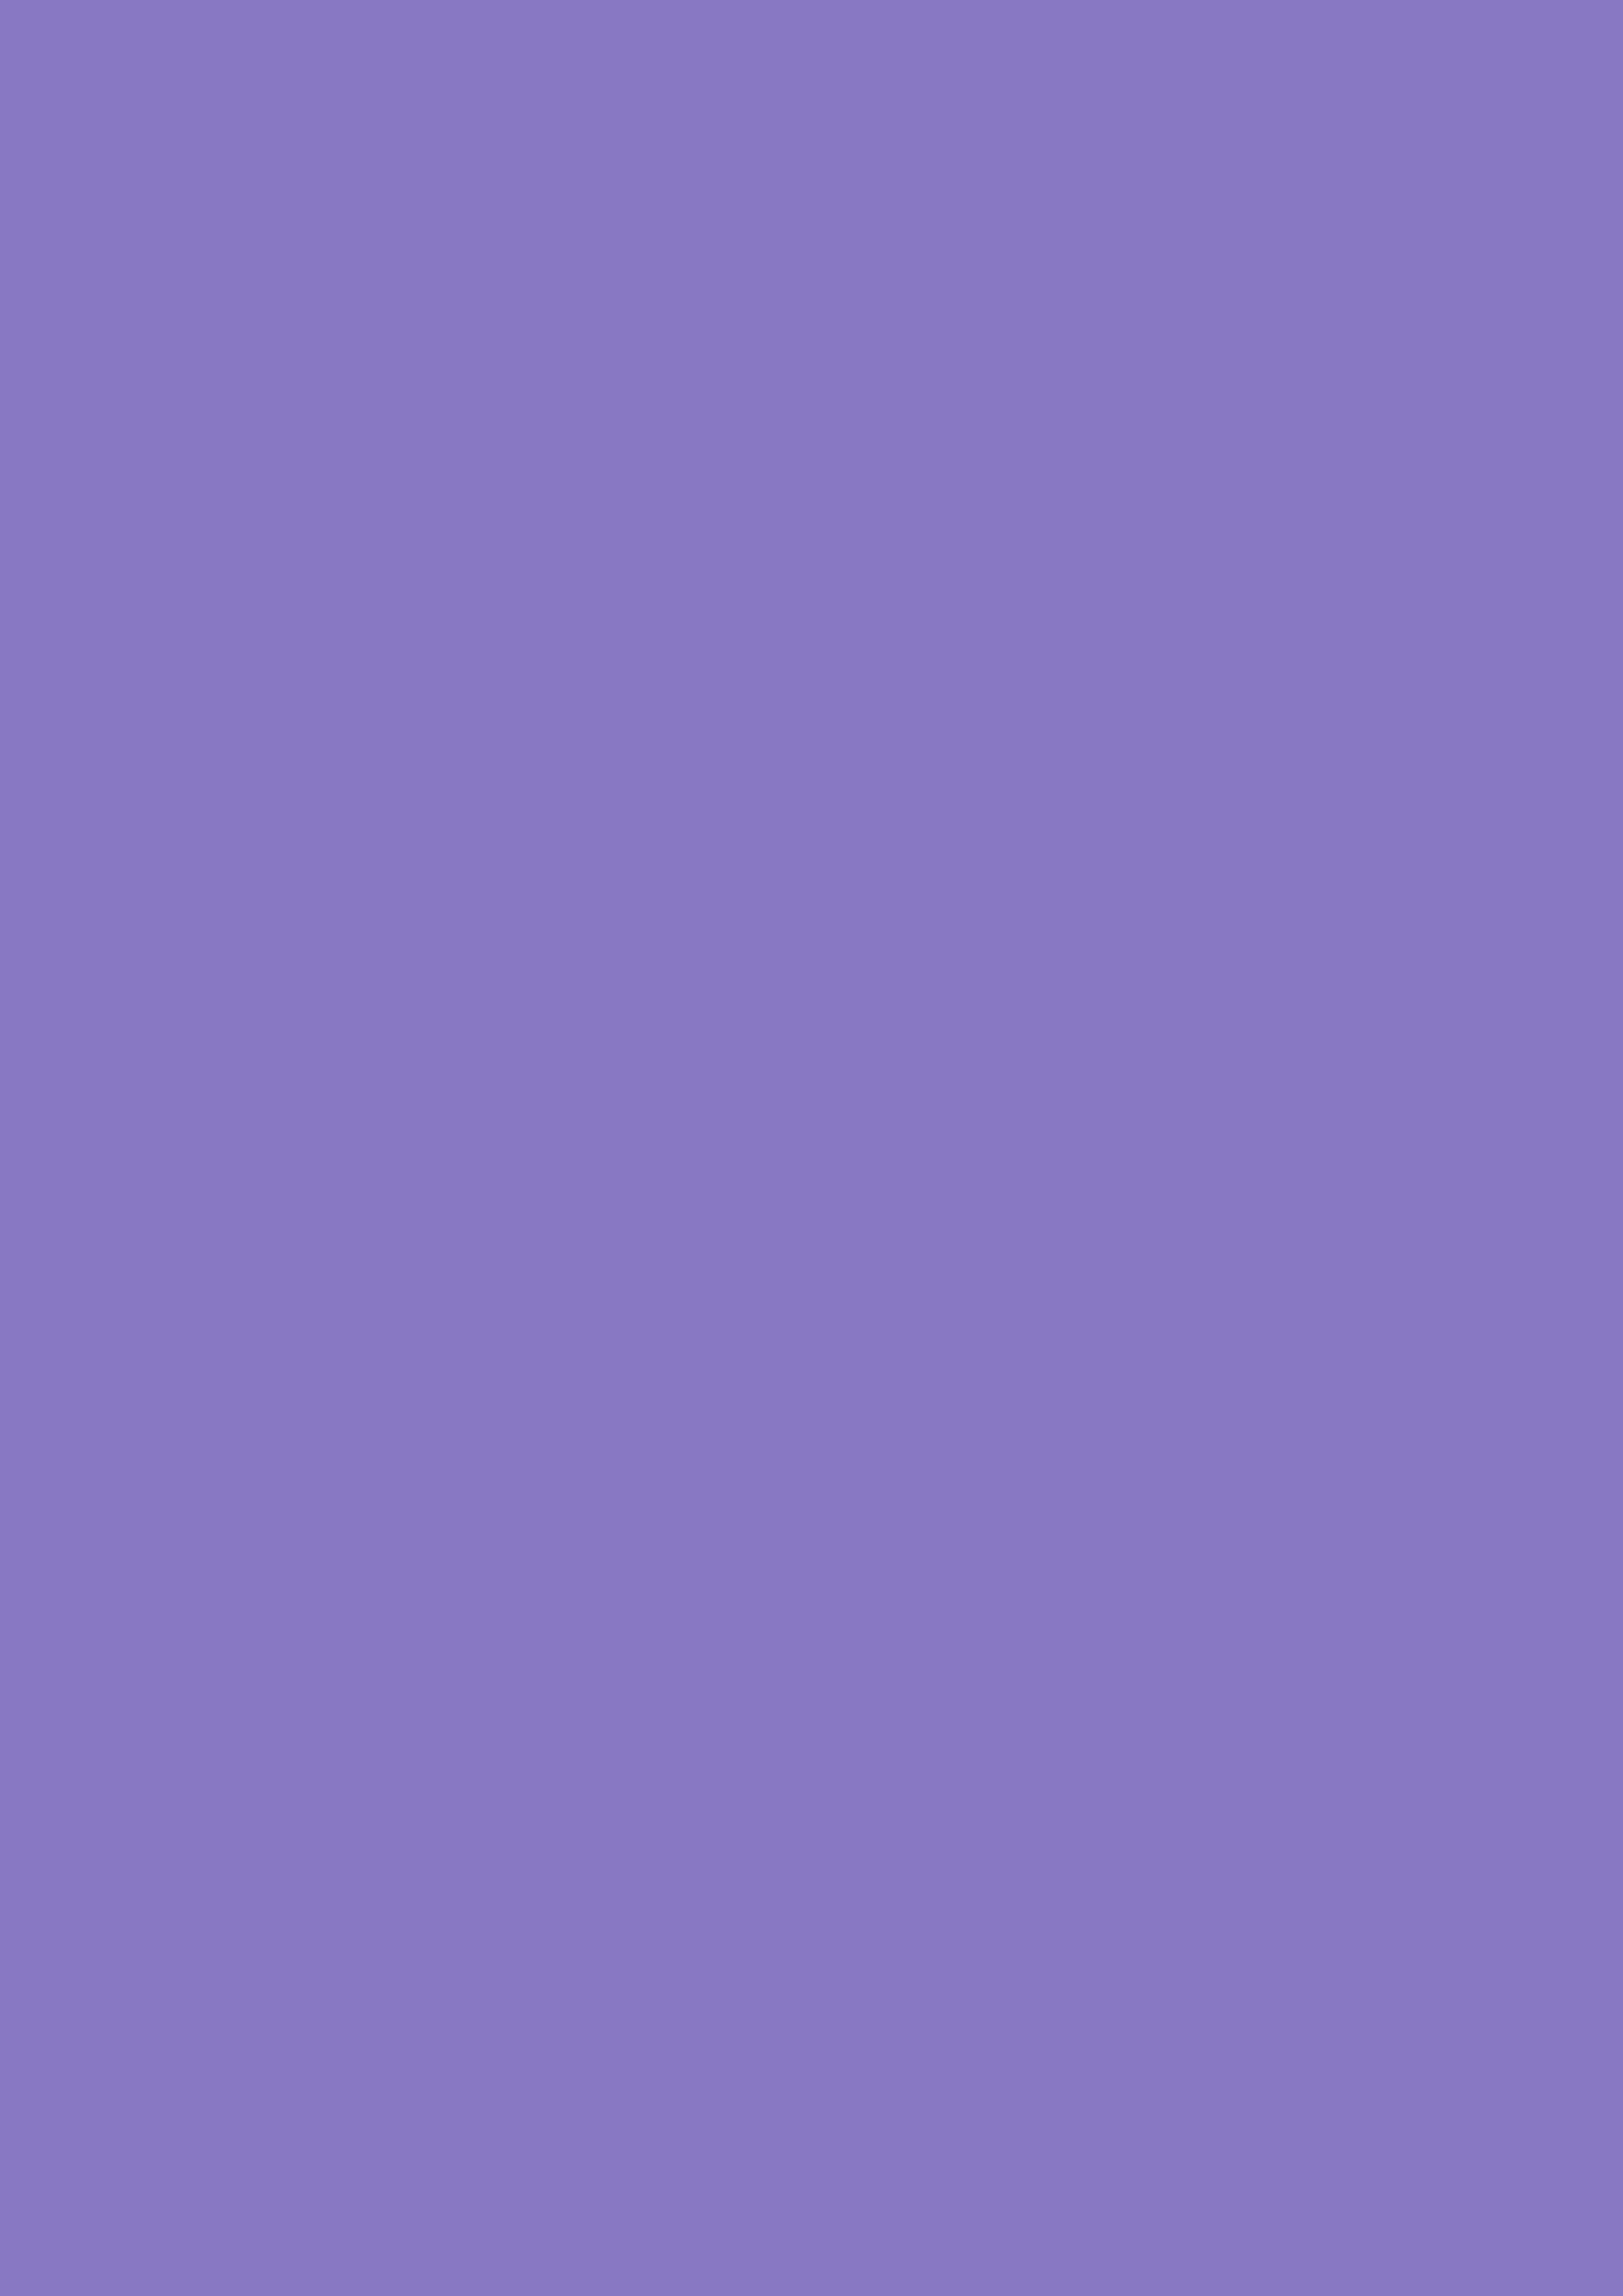 2480x3508 Ube Solid Color Background